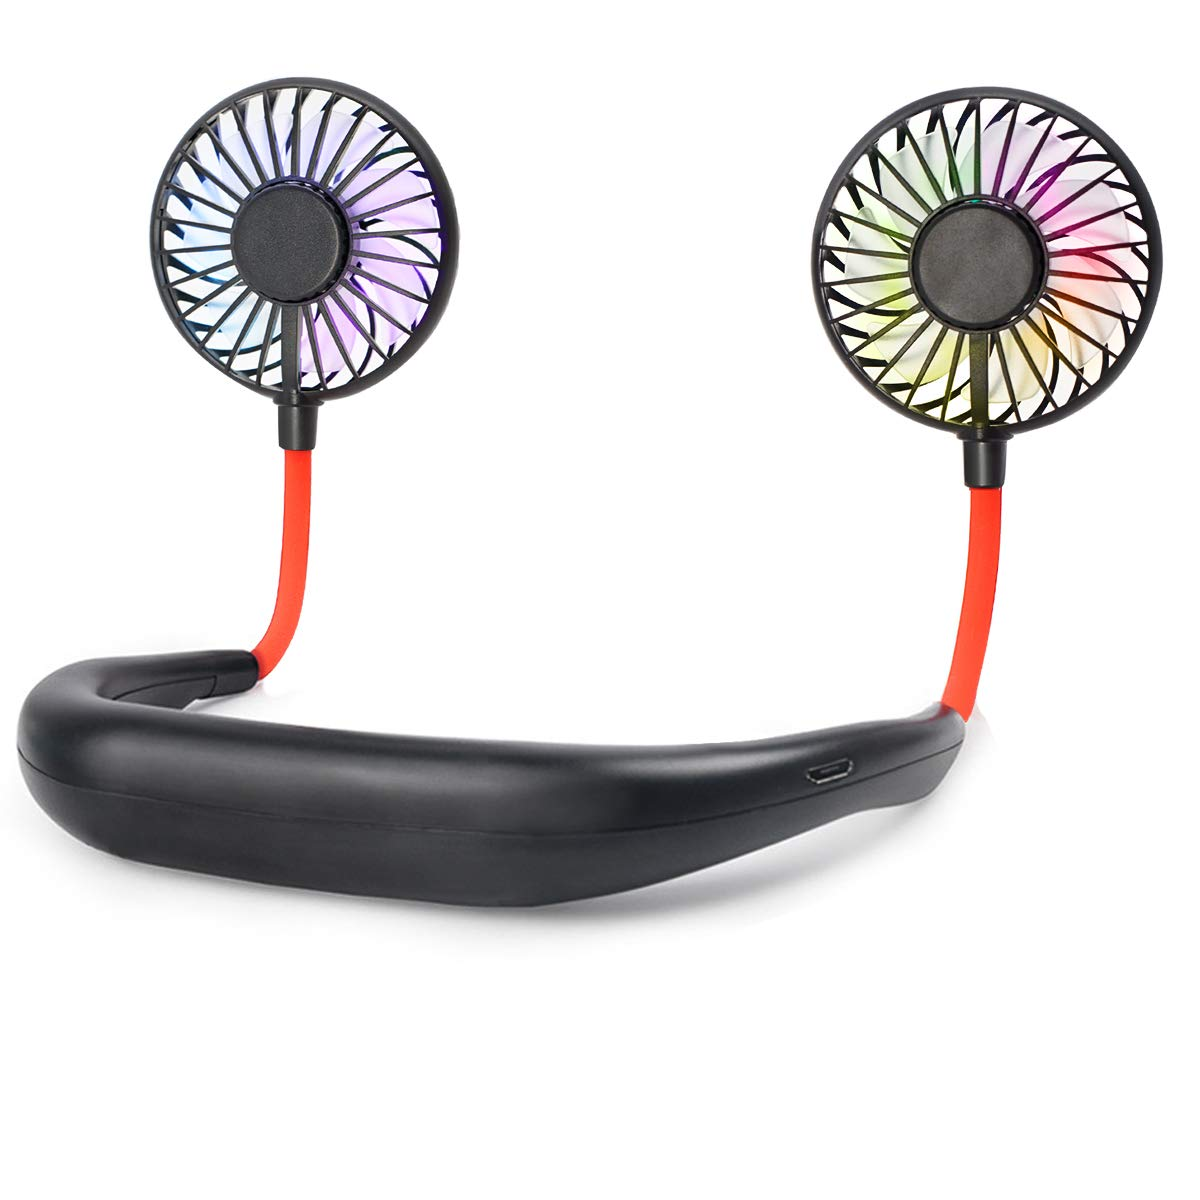 biukpci Mini Hand Free Personal Fan USB Rechargeable Desk Fan with 2500mA Battery Capacity 3 Adjustable Speed Headphone Design Wearable Neckband Fan for Travel Office Room Outdoor Household - Black